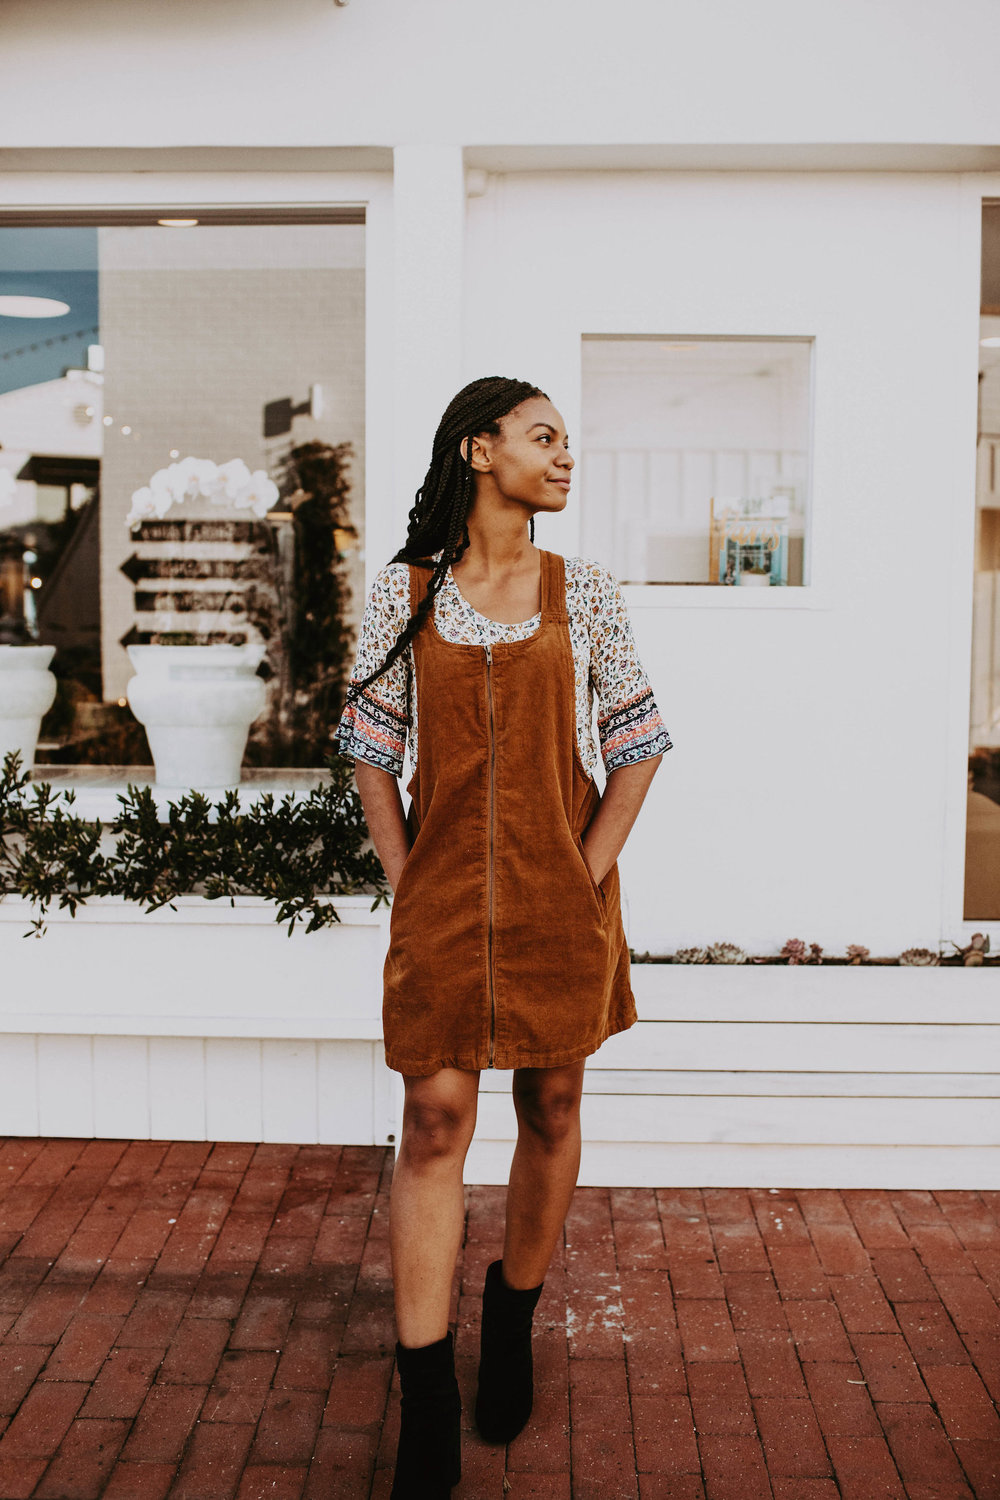 Corduroy dress for fall // A Week Of 1970s-Inspired Outfits With Leah Thomas, The Sustainable Lifestyle Blogger Behind Green Girl Leah on The Good Trade